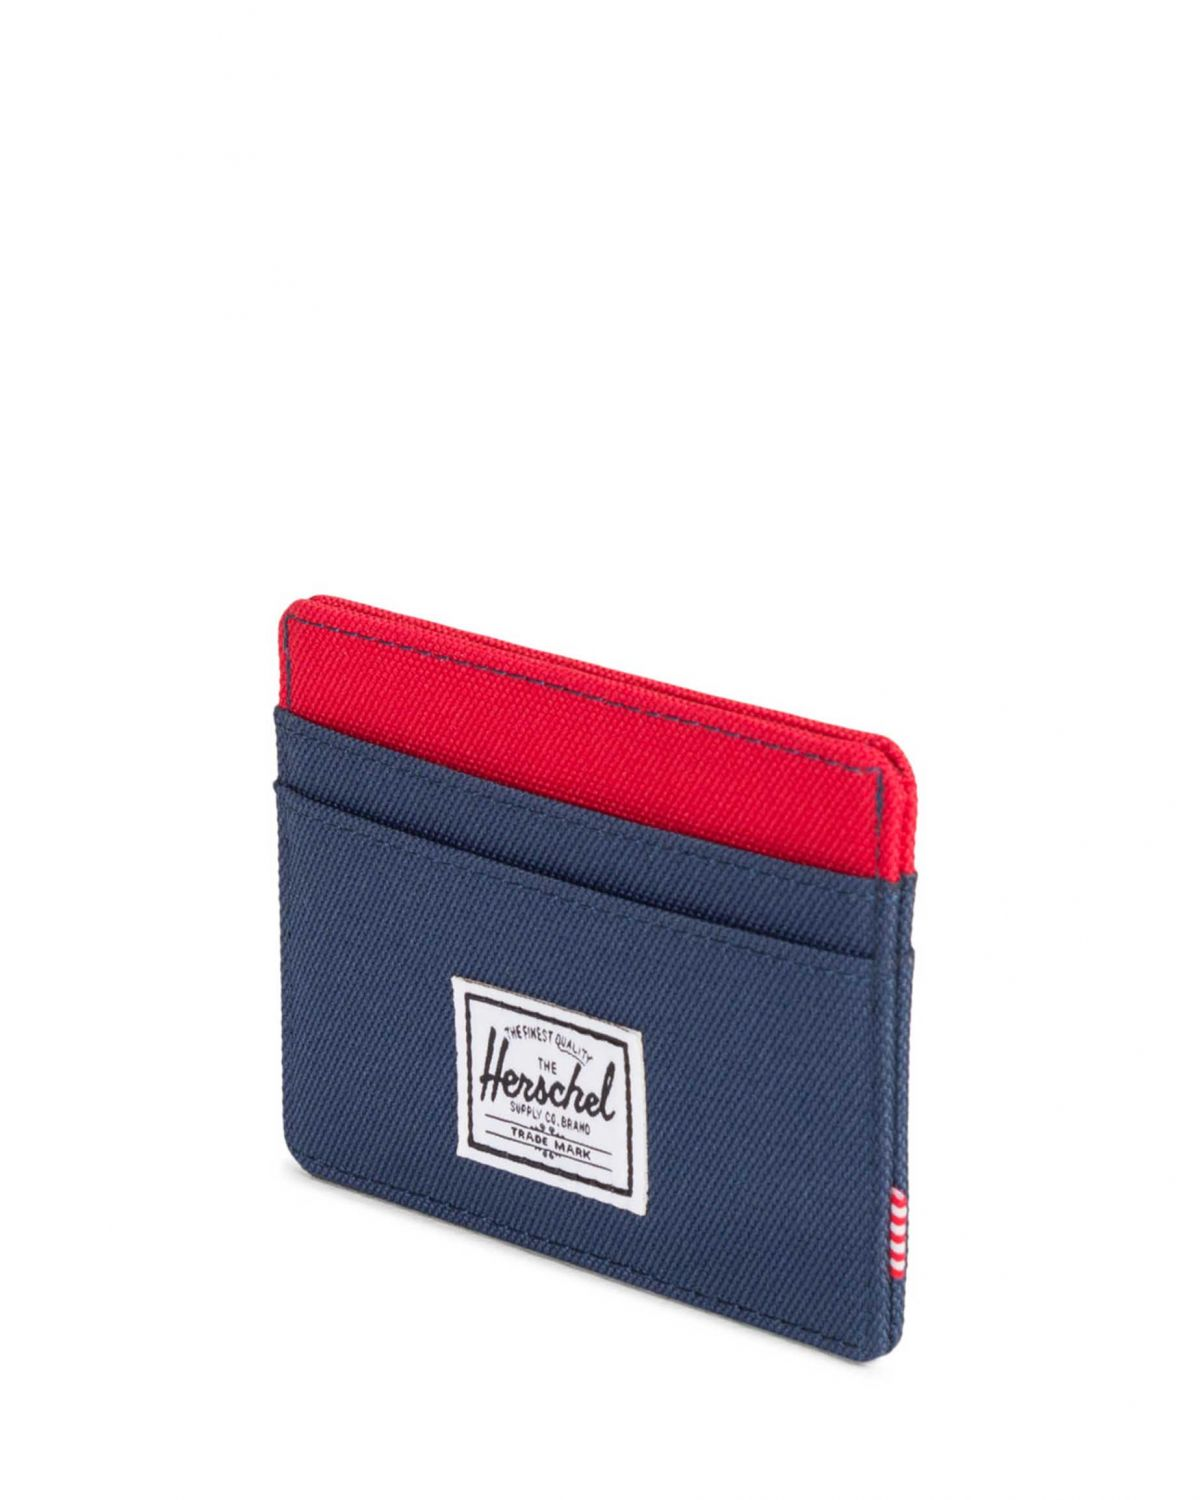 Herschel Charlie Rfid Co Kartlık 10360 Navy/Red/Woodland Camo